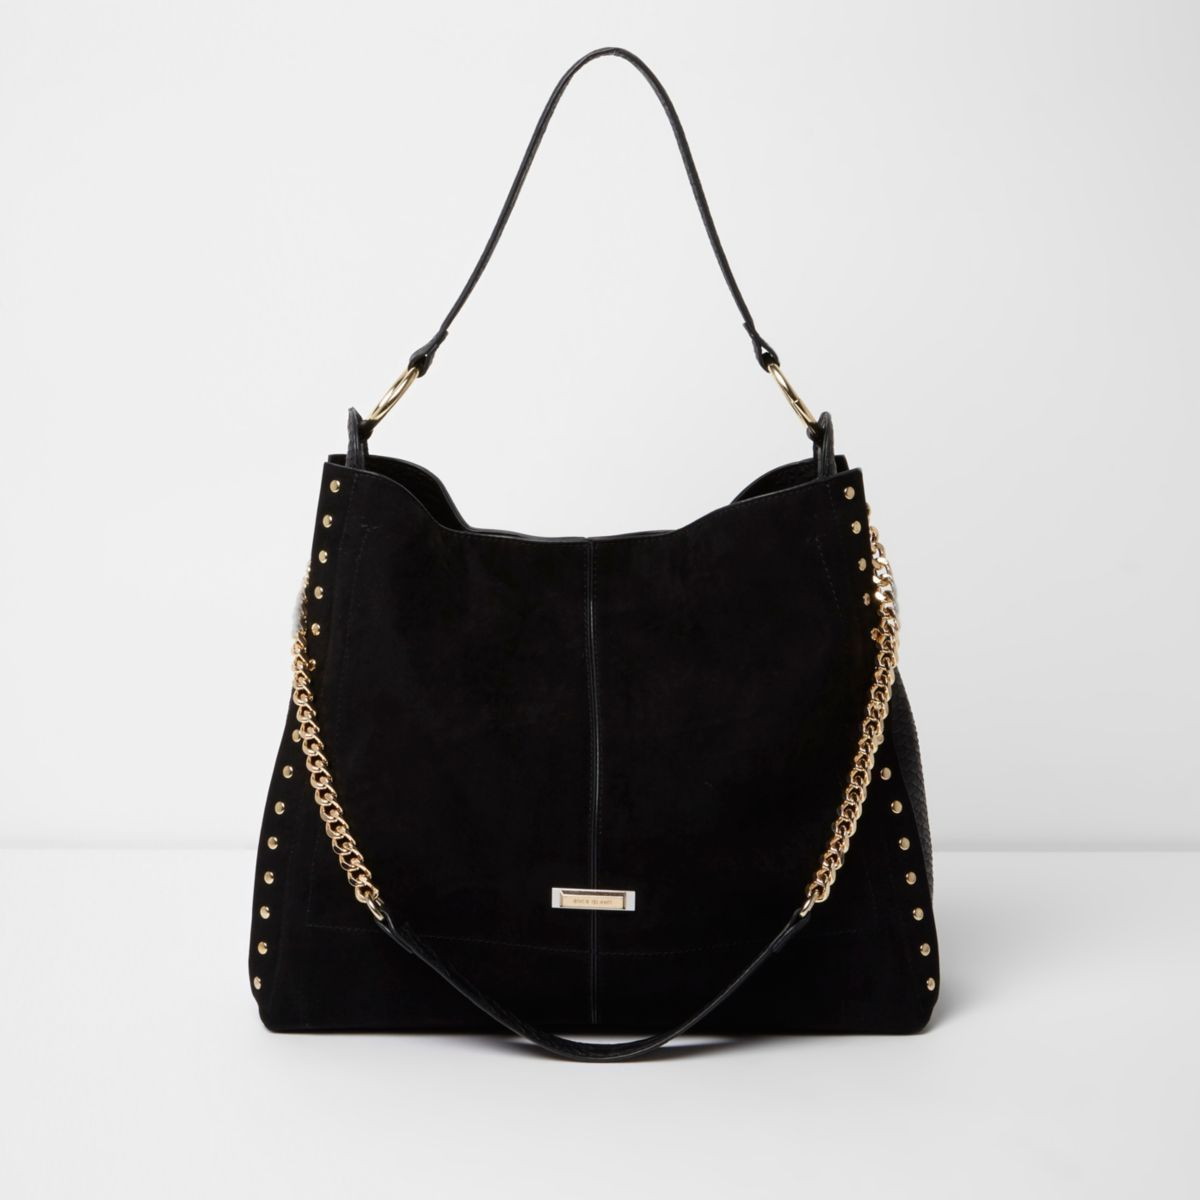 ffdbbc4e01a Black studded oversized slouch chain bag - Shoulder Bags - Bags   Purses -  women